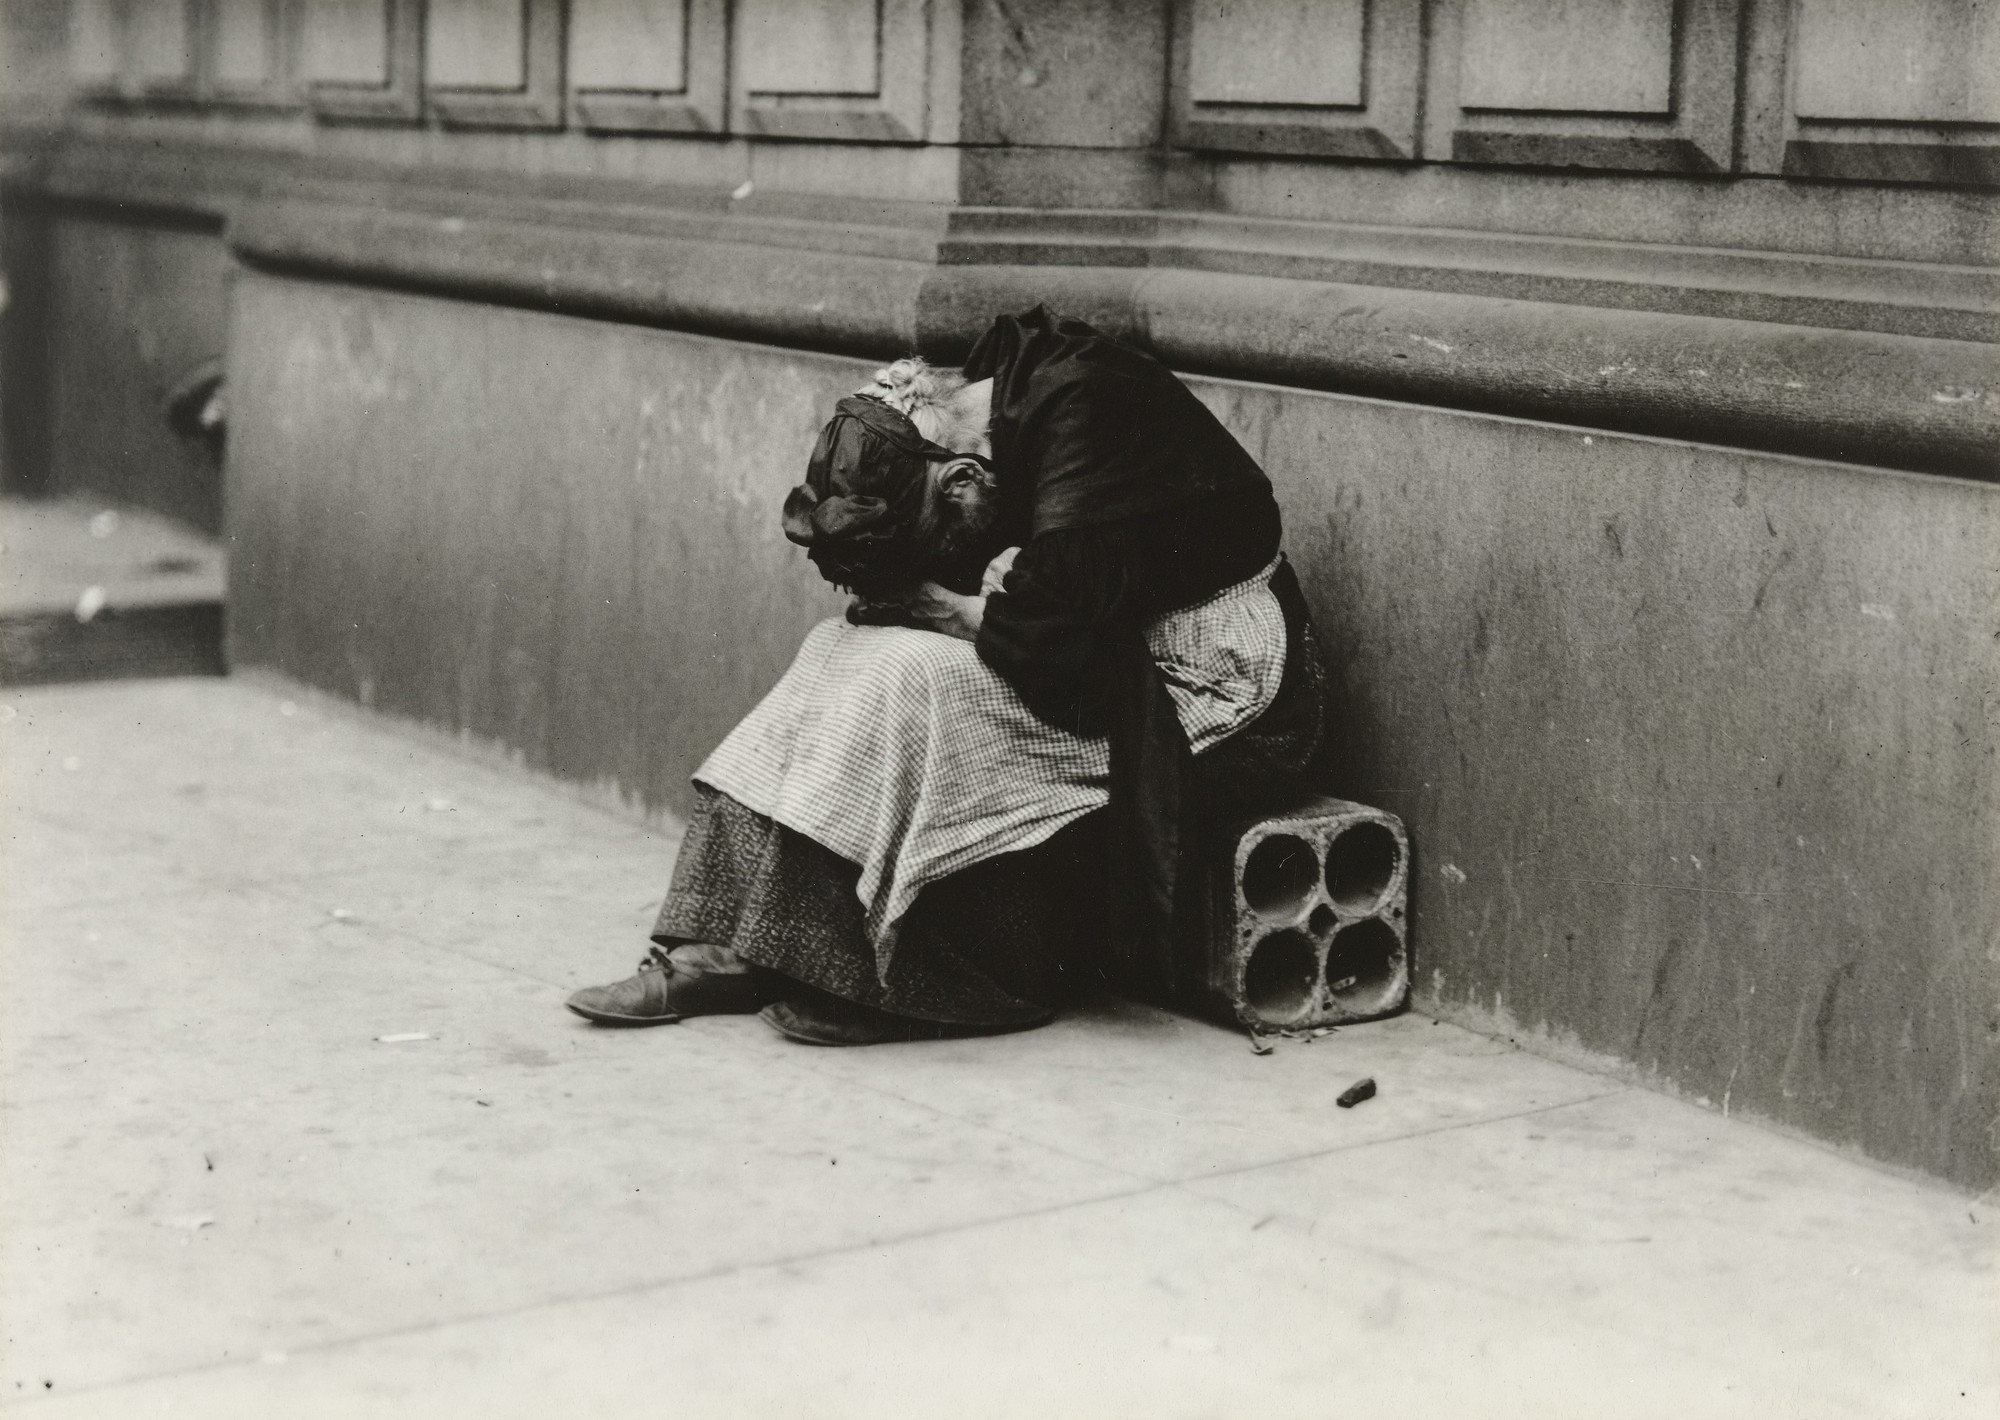 Lewis W. Hine. Tragedy of Old Age. 1912